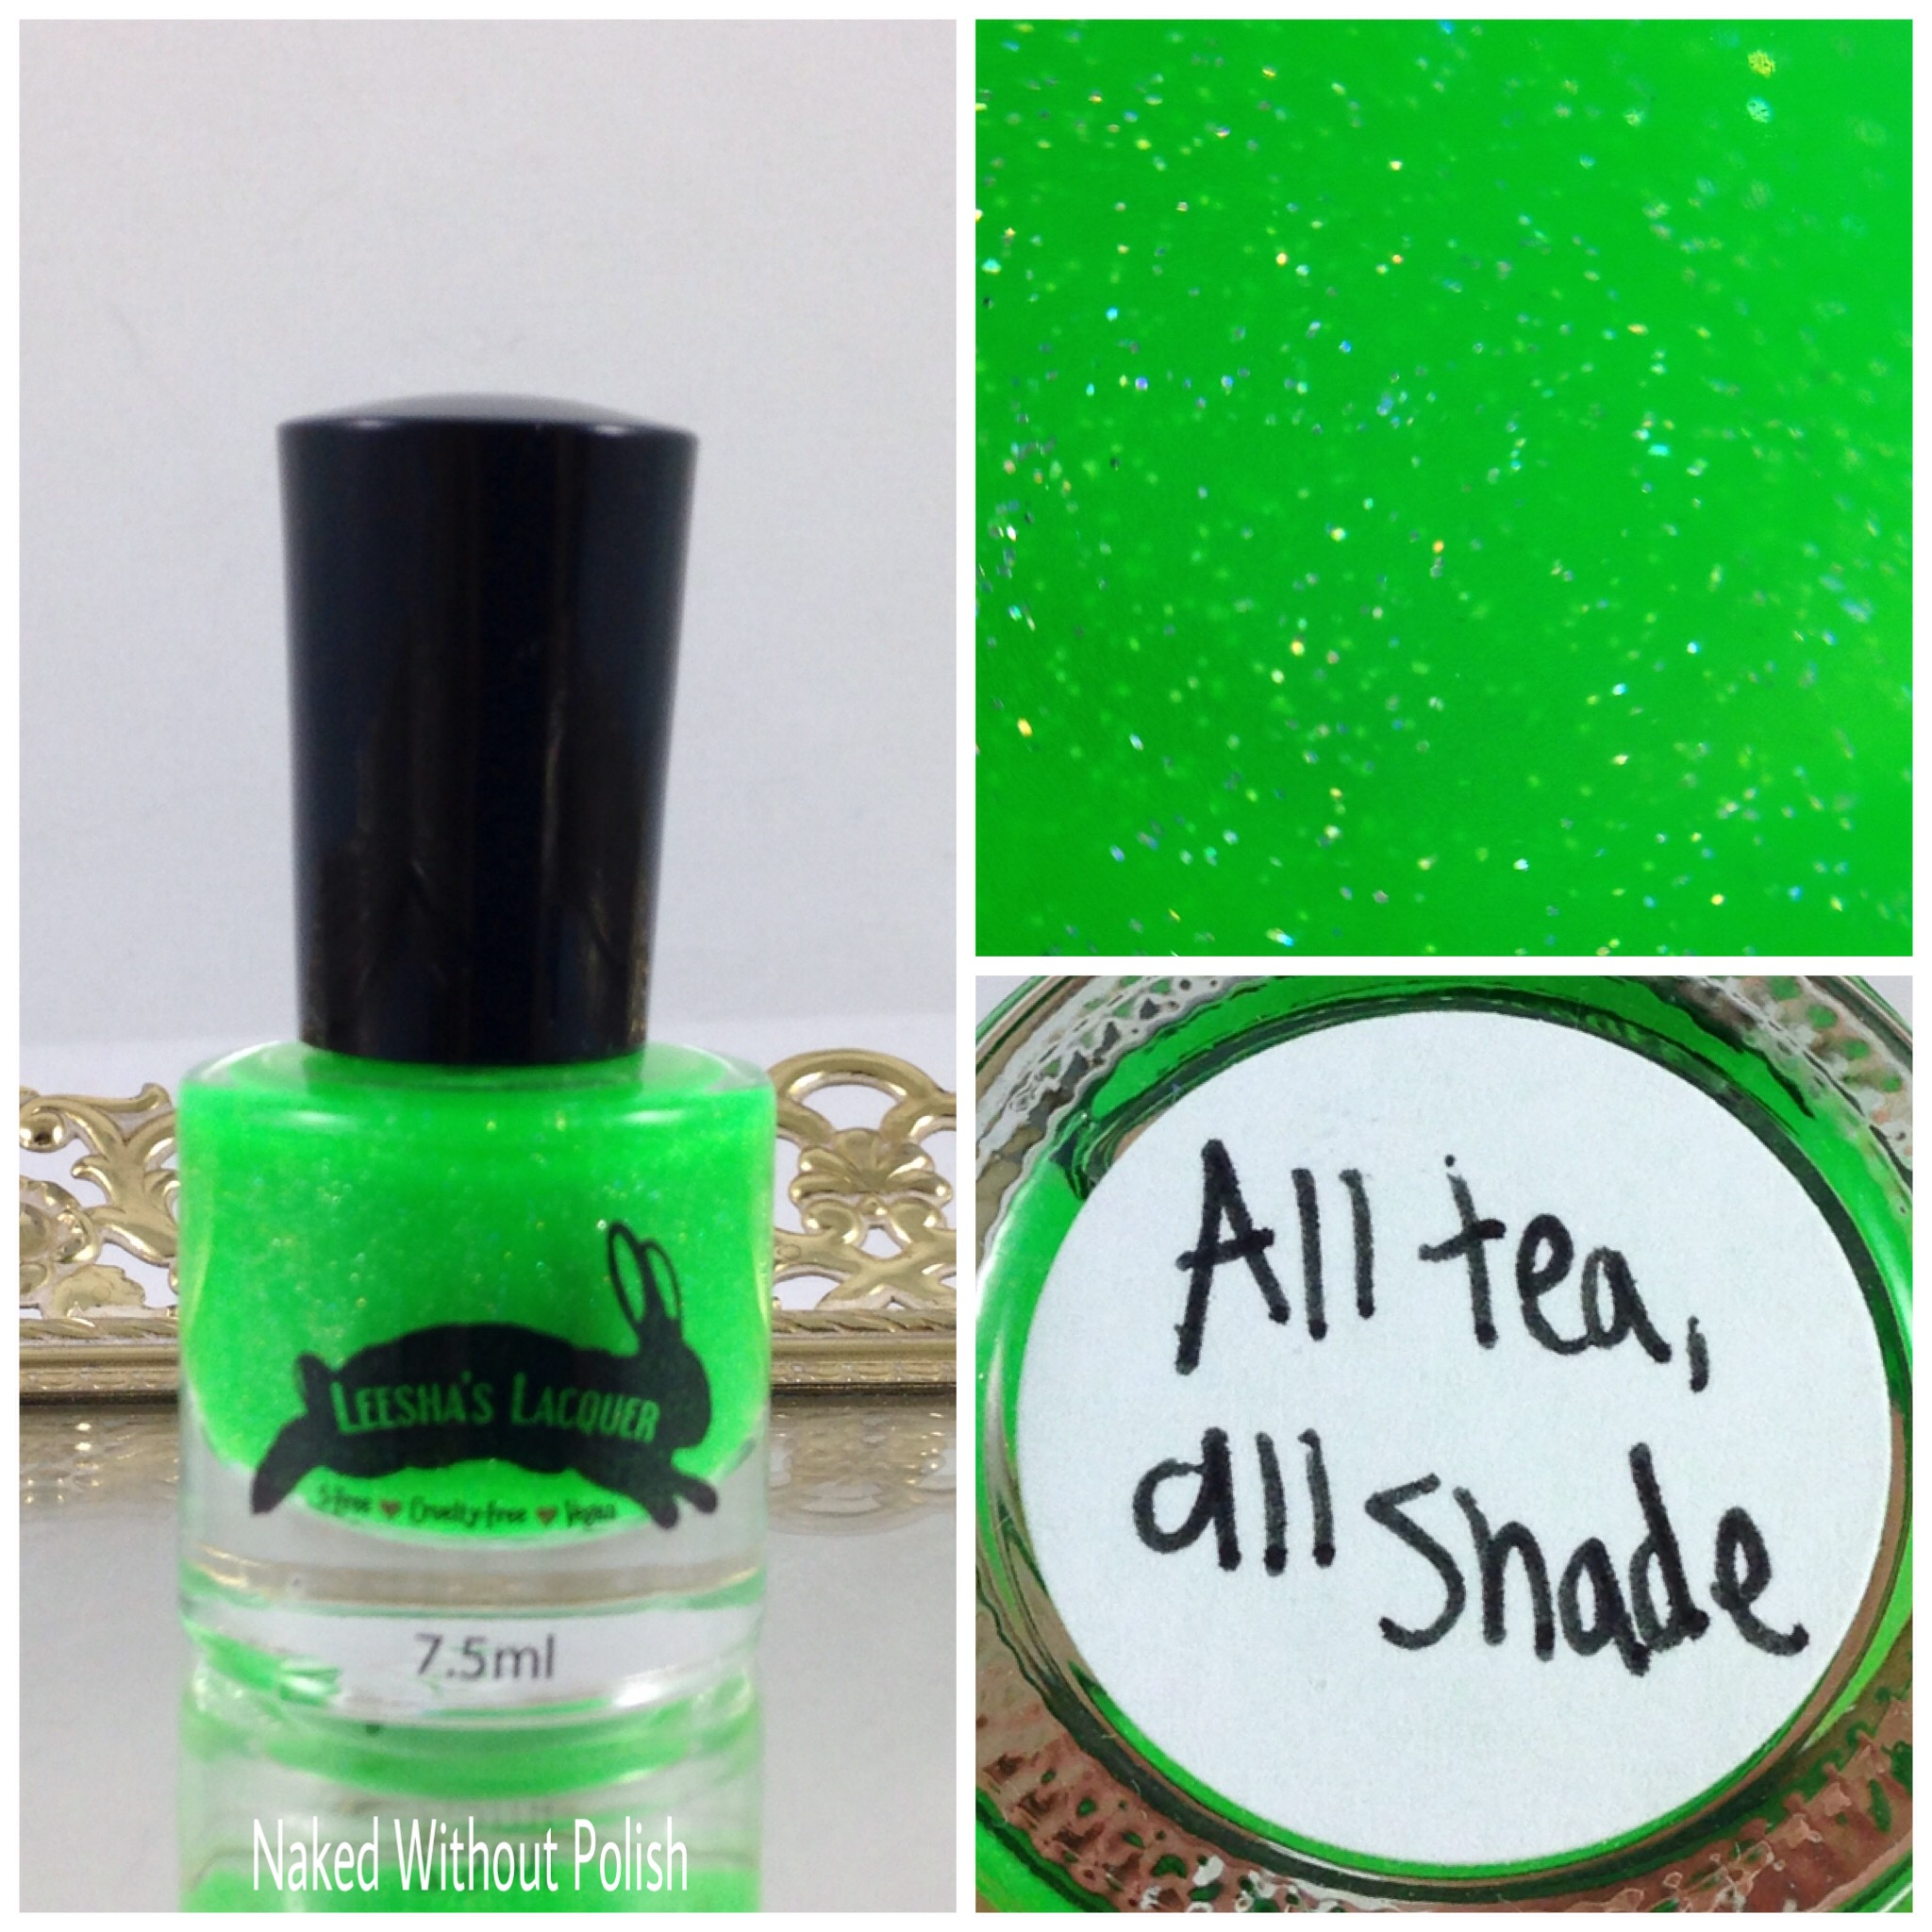 Leeshas-Lacquer-All-Tea-All-Shade-1